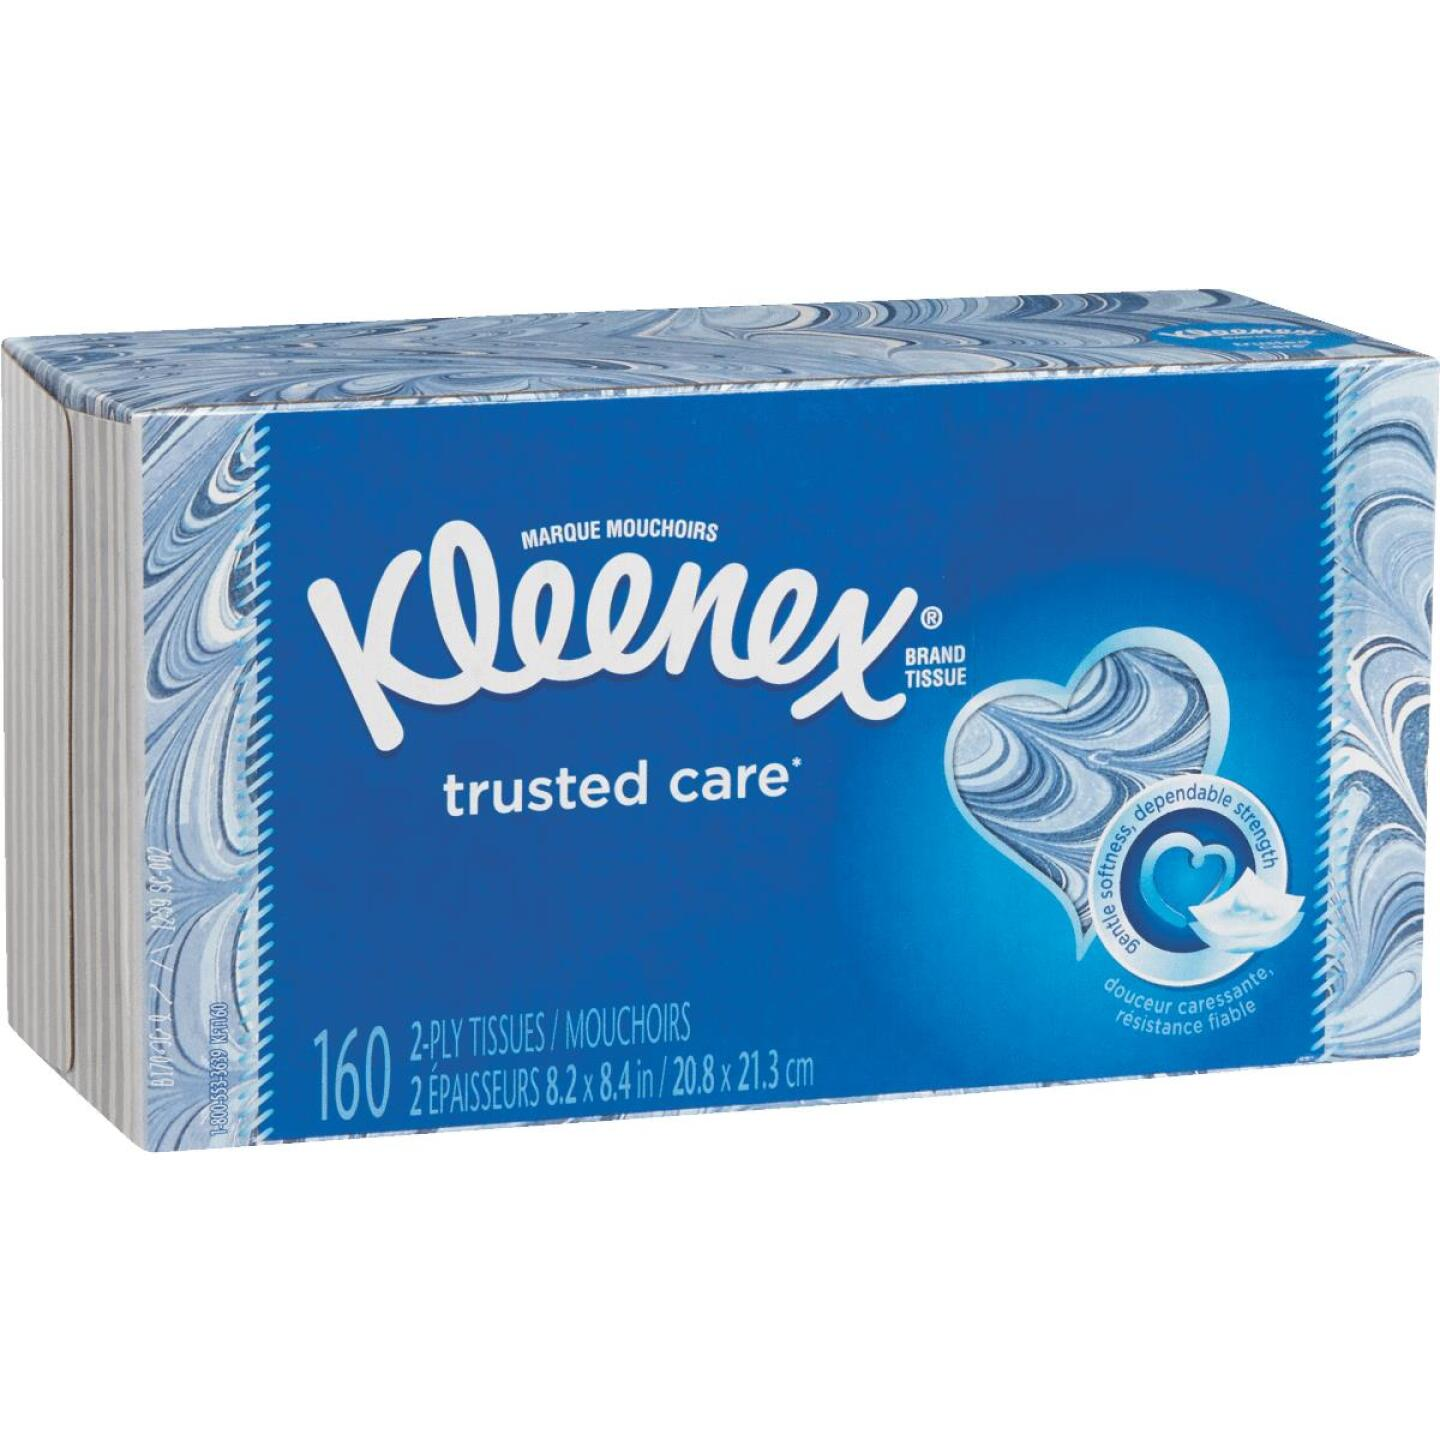 Kleenex Trusted Care 144 Count 2-Ply White Facial Tissue Image 2